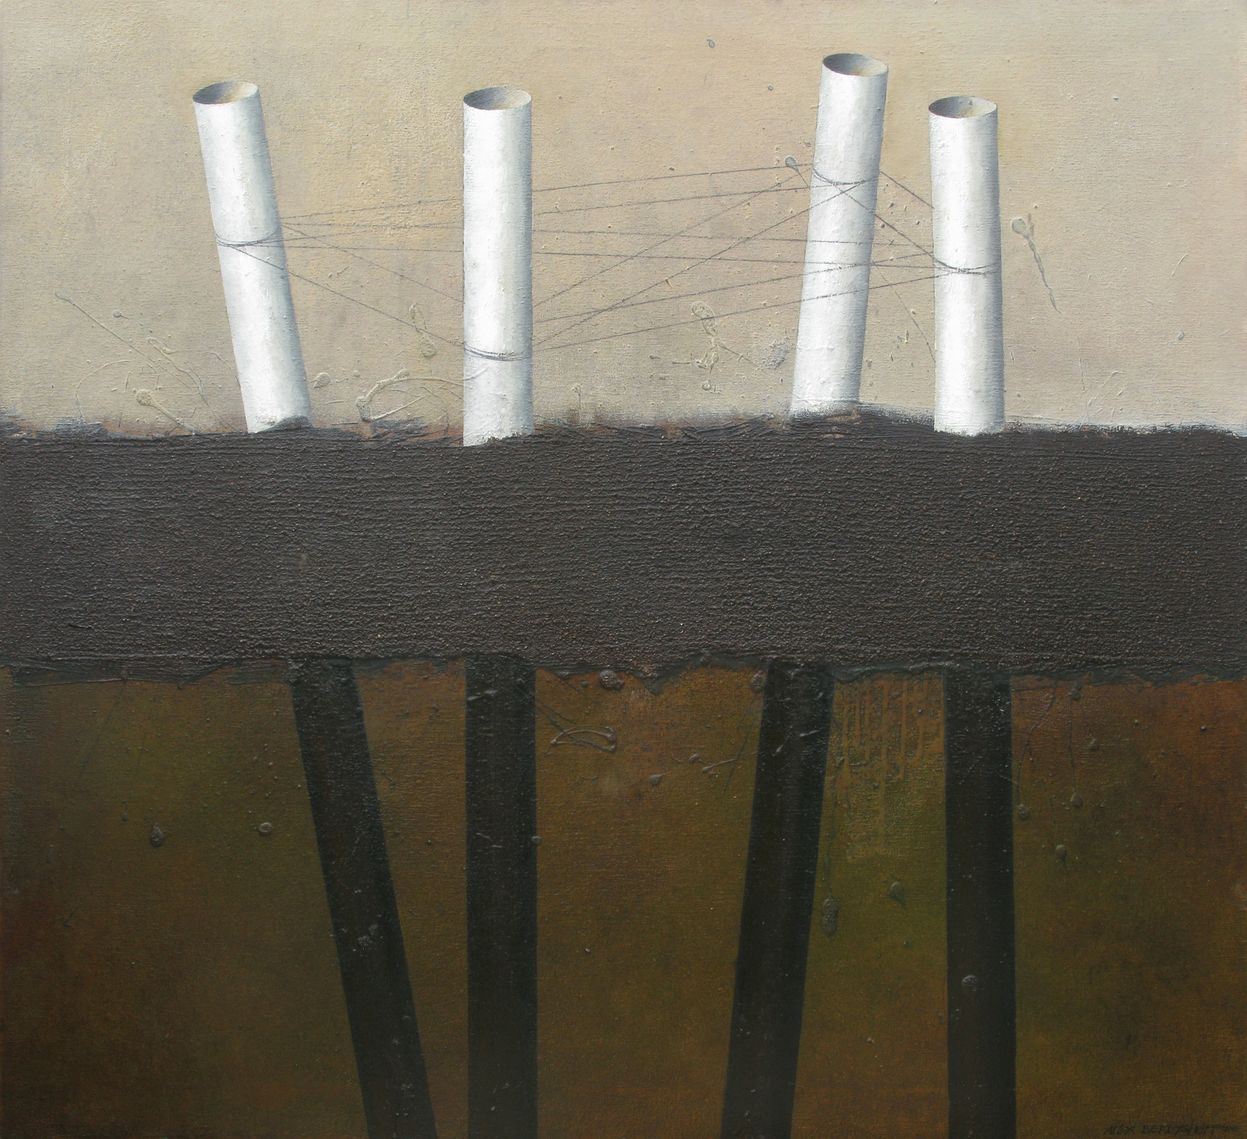 CONNECTIONS - SEPARATIONS, OIL ON CANVAS, 110X120CM, 2010